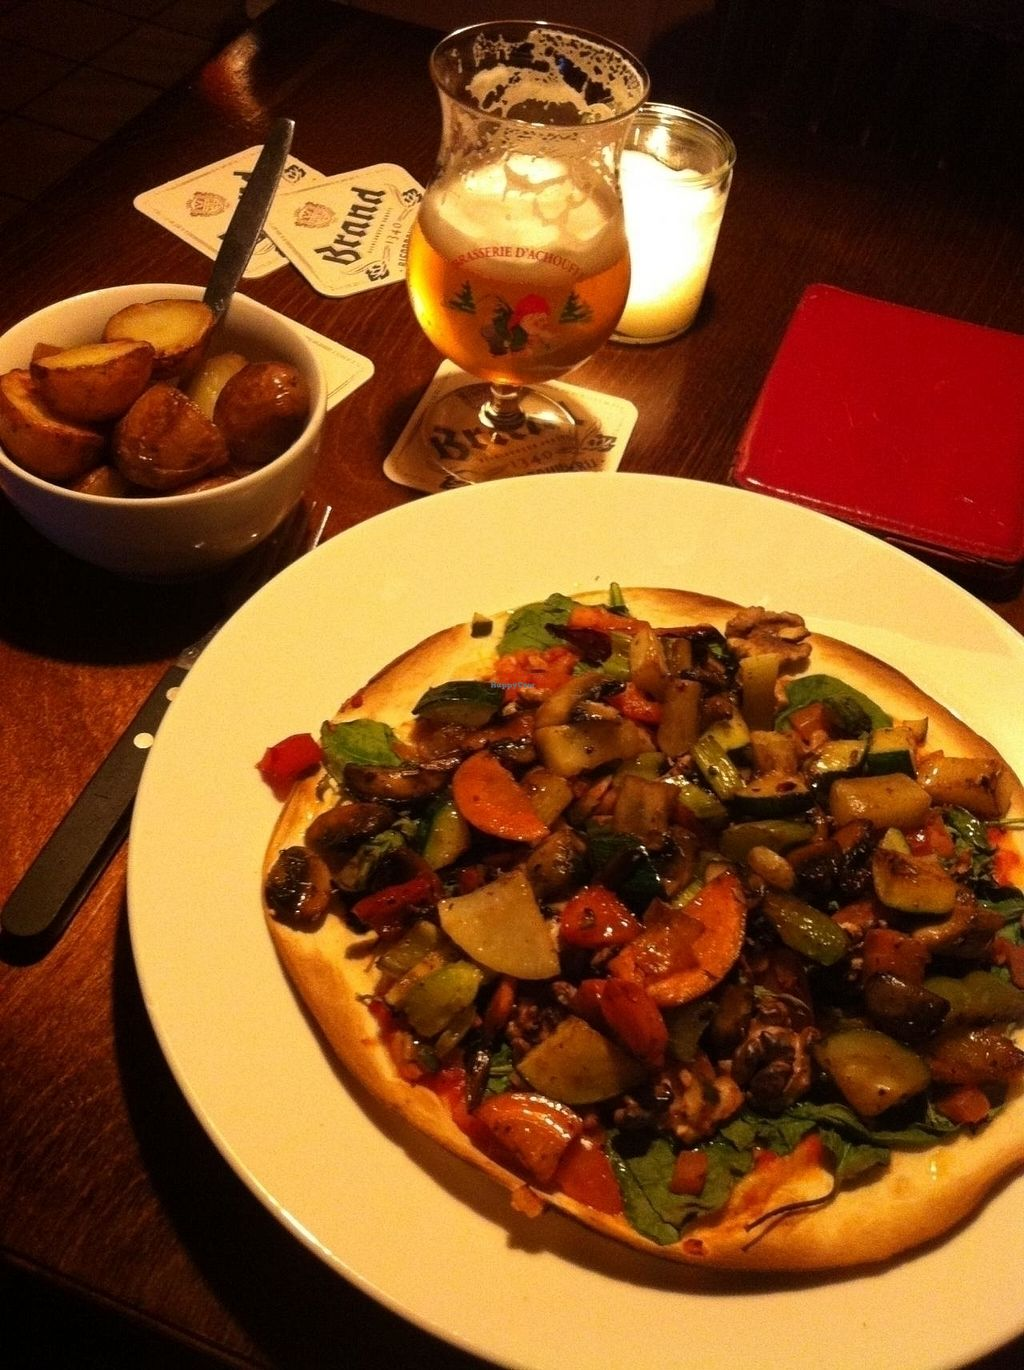 "Photo of Malle Jan  by <a href=""/members/profile/Sannes"">Sannes</a> <br/>Vegan - Tortilla pizza with grilled (or baked?) vegetables and walnuts with some baked potatoes <br/> July 6, 2015  - <a href='/contact/abuse/image/50982/175186'>Report</a>"